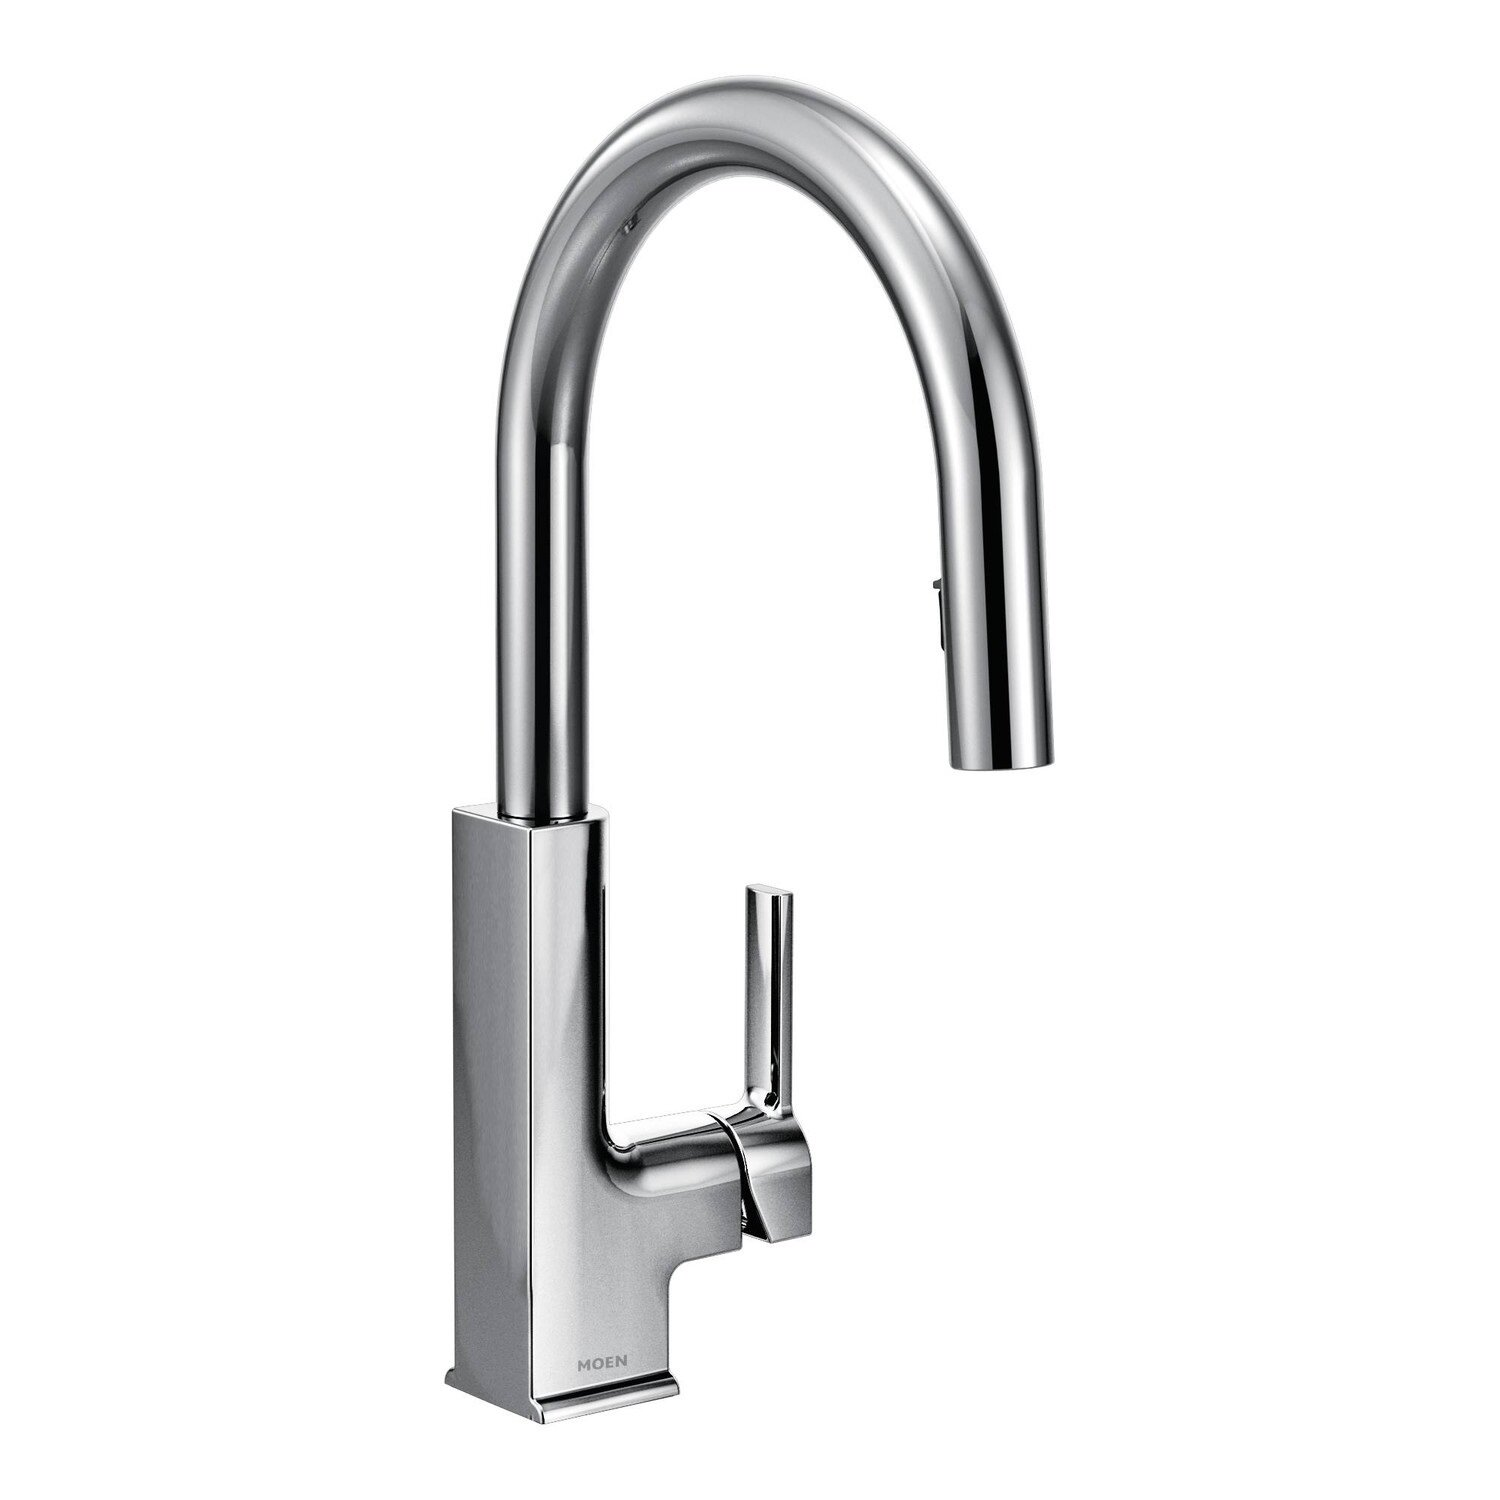 Moen STo Single Handle Deck mount Kitchen Faucet & Reviews